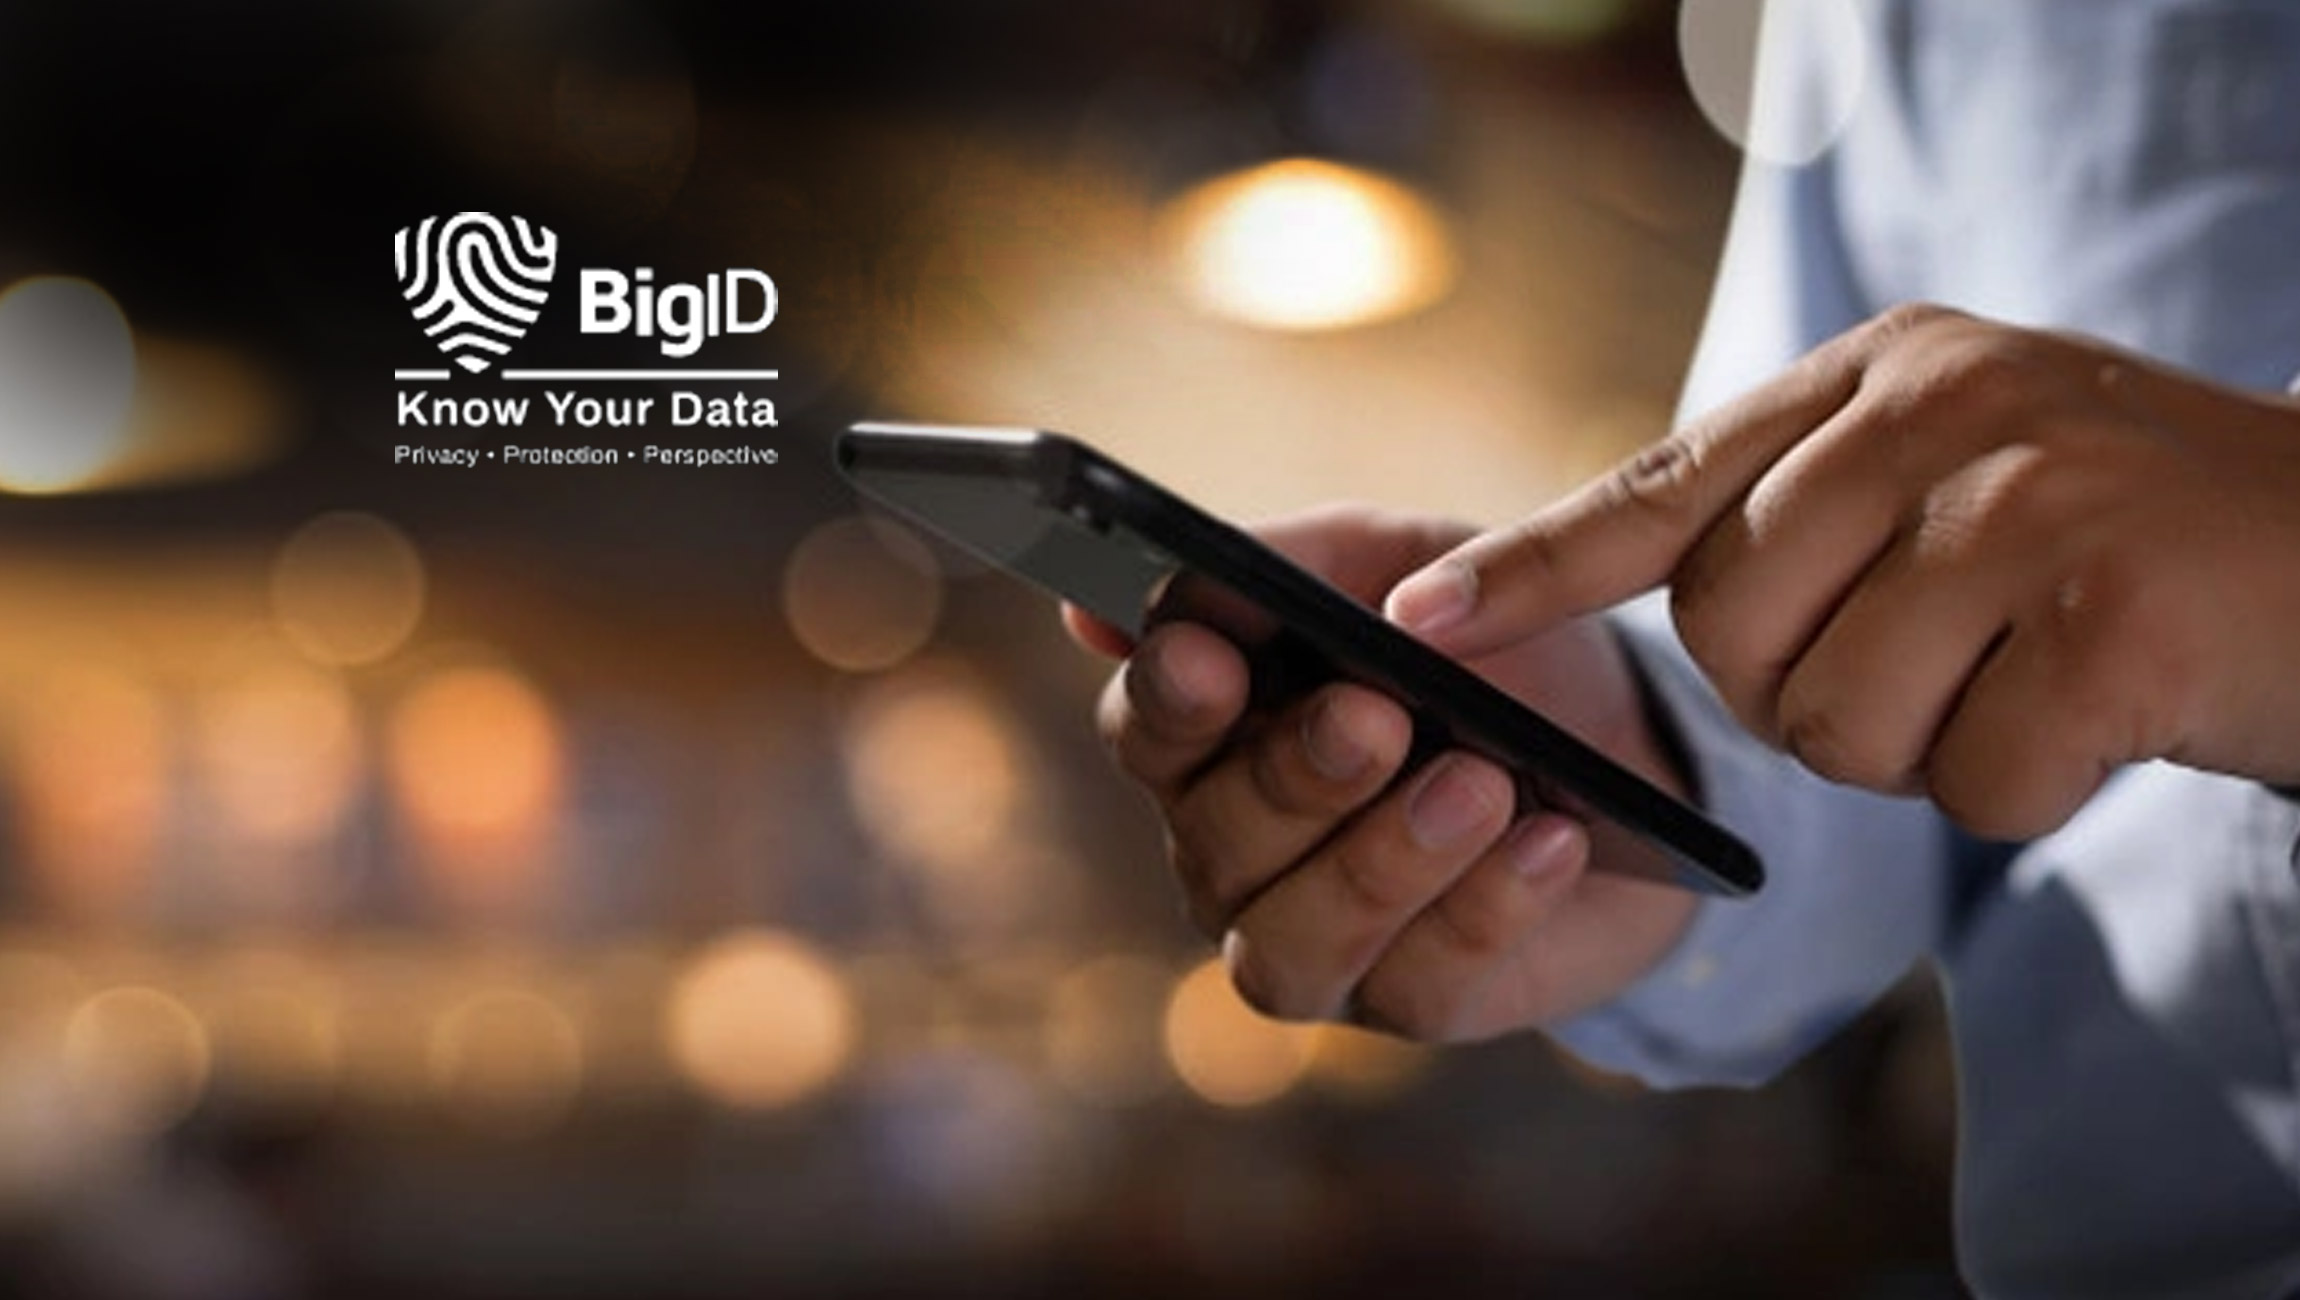 BigID Reimagines Data Management With The First Open, Extensible App Store & Marketplace For Data Privacy, Security And Governance